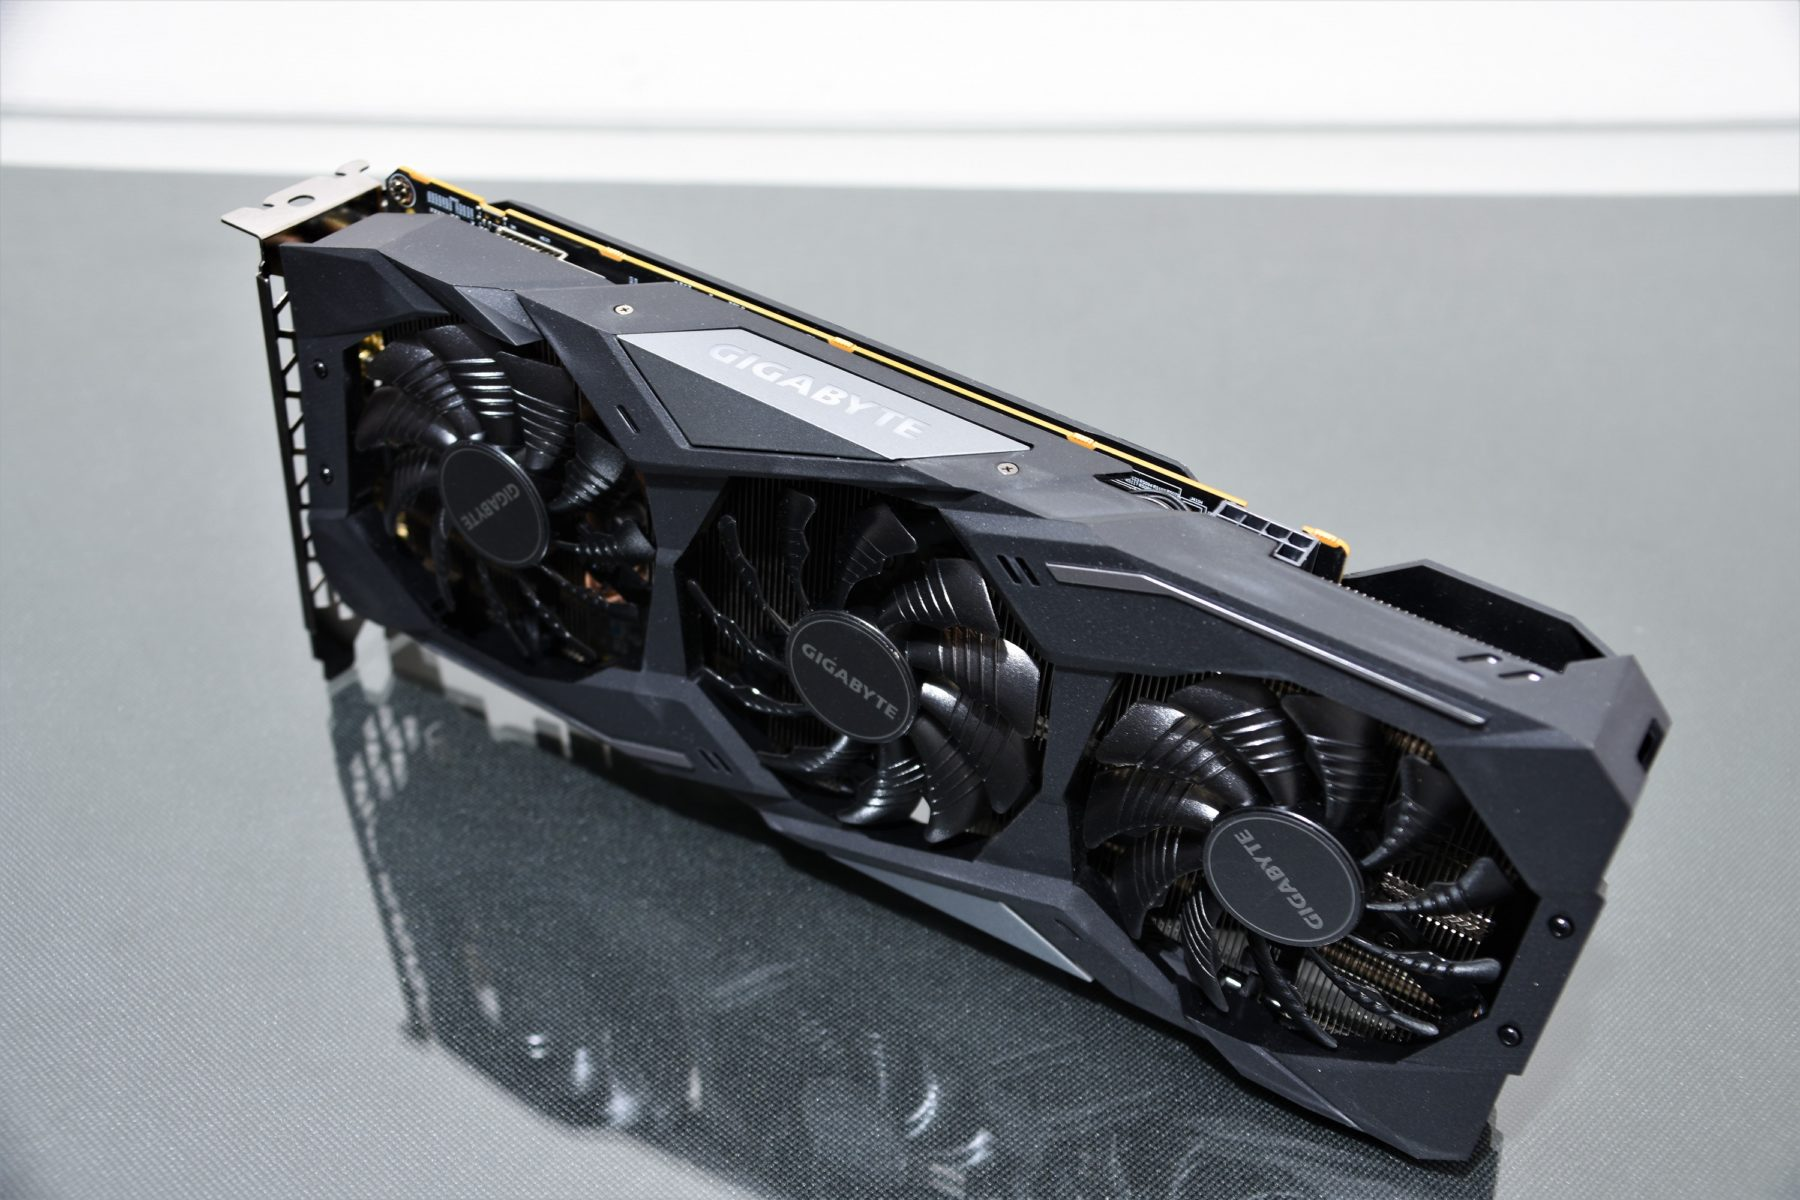 Review GIGABYTE RX 5500XT GAMING OC 8GB – Specs | Test | Overclocking